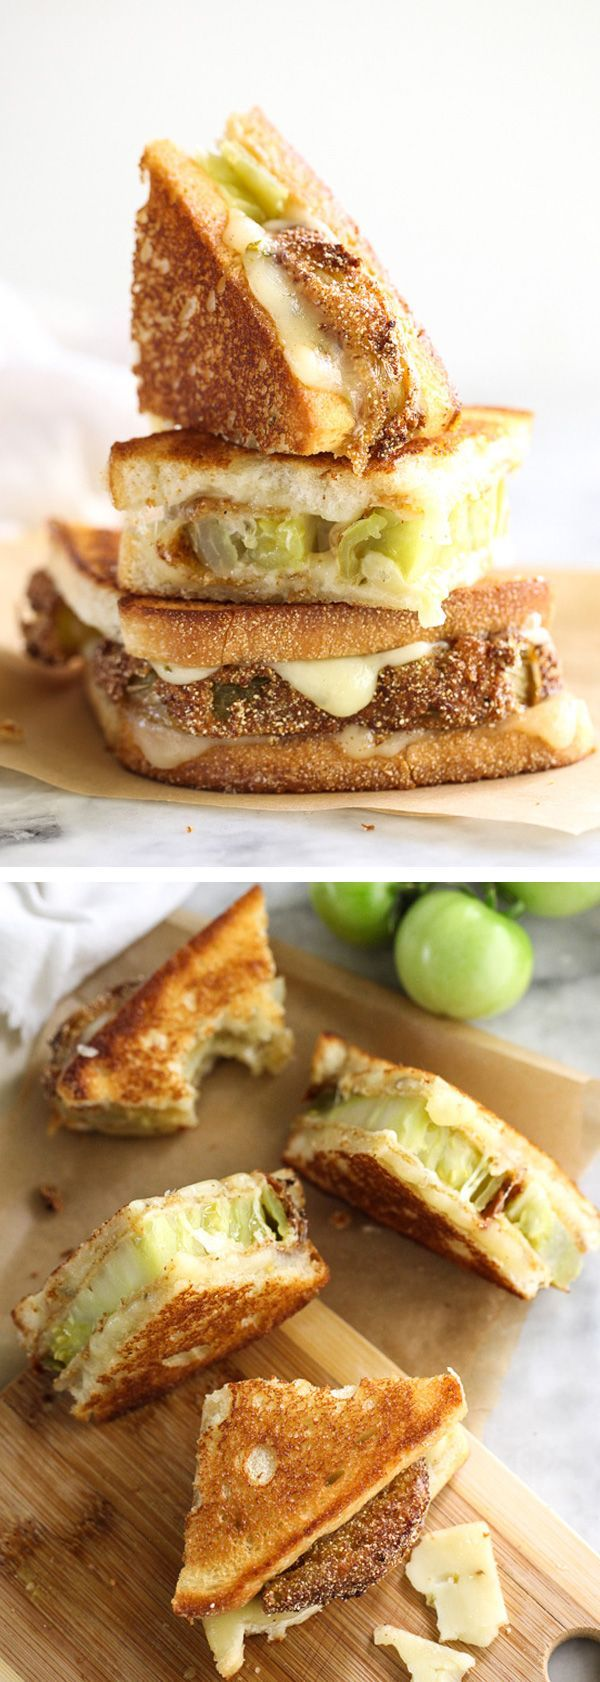 Fried Green Tomatoes Grilled Cheese Sandwich - Spiced up with gooey monterey jack cheese.